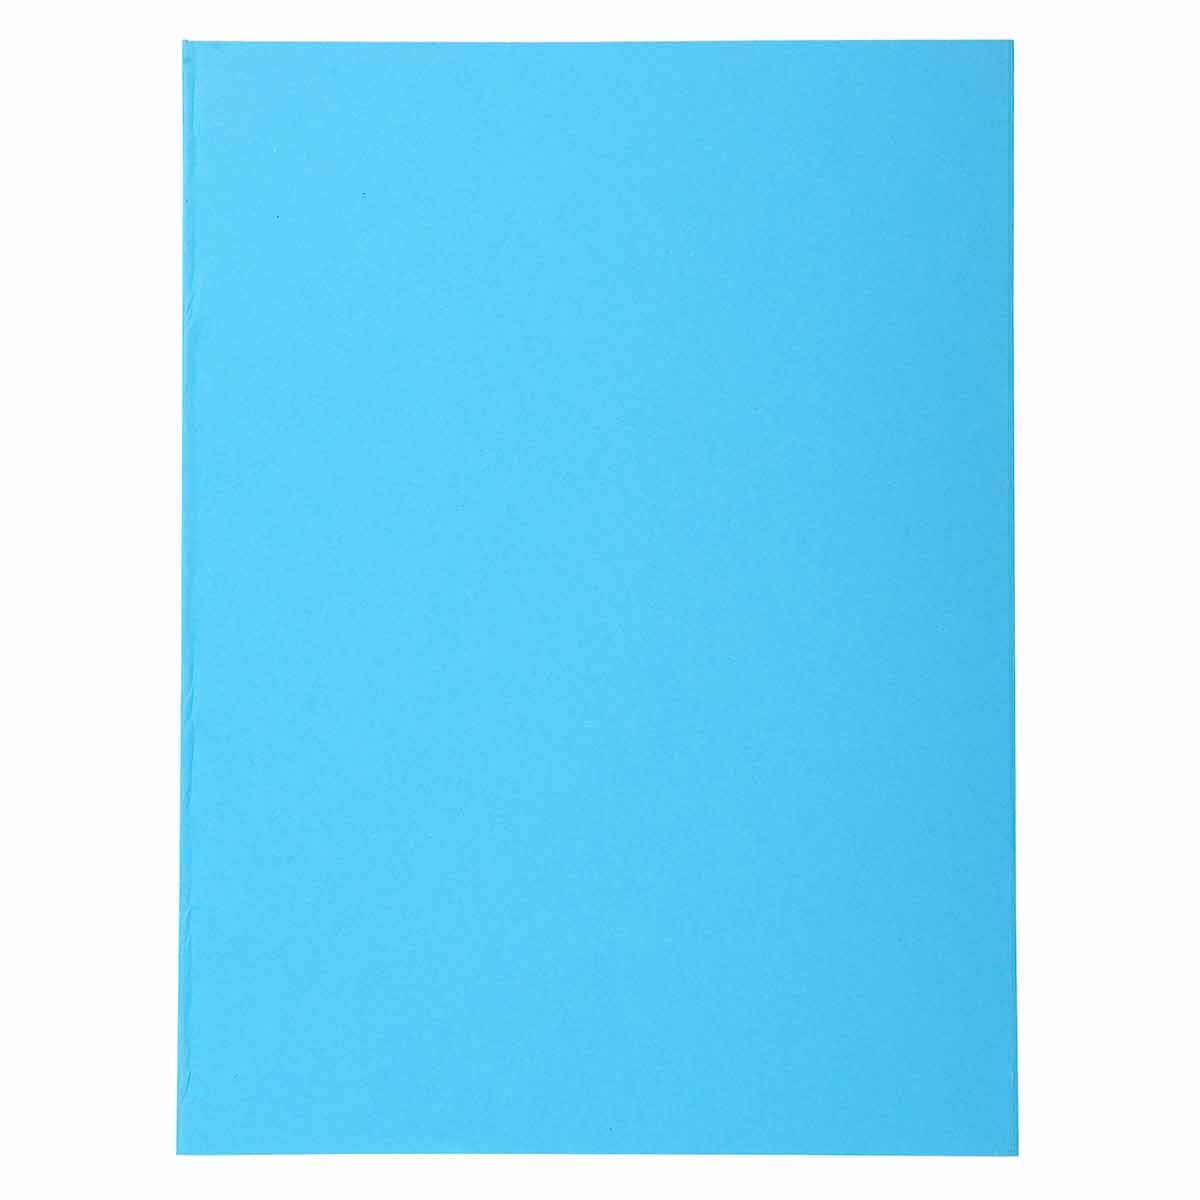 Exacompta Forever Square Cut Folders A4 220gsm Pack of 500 Blue